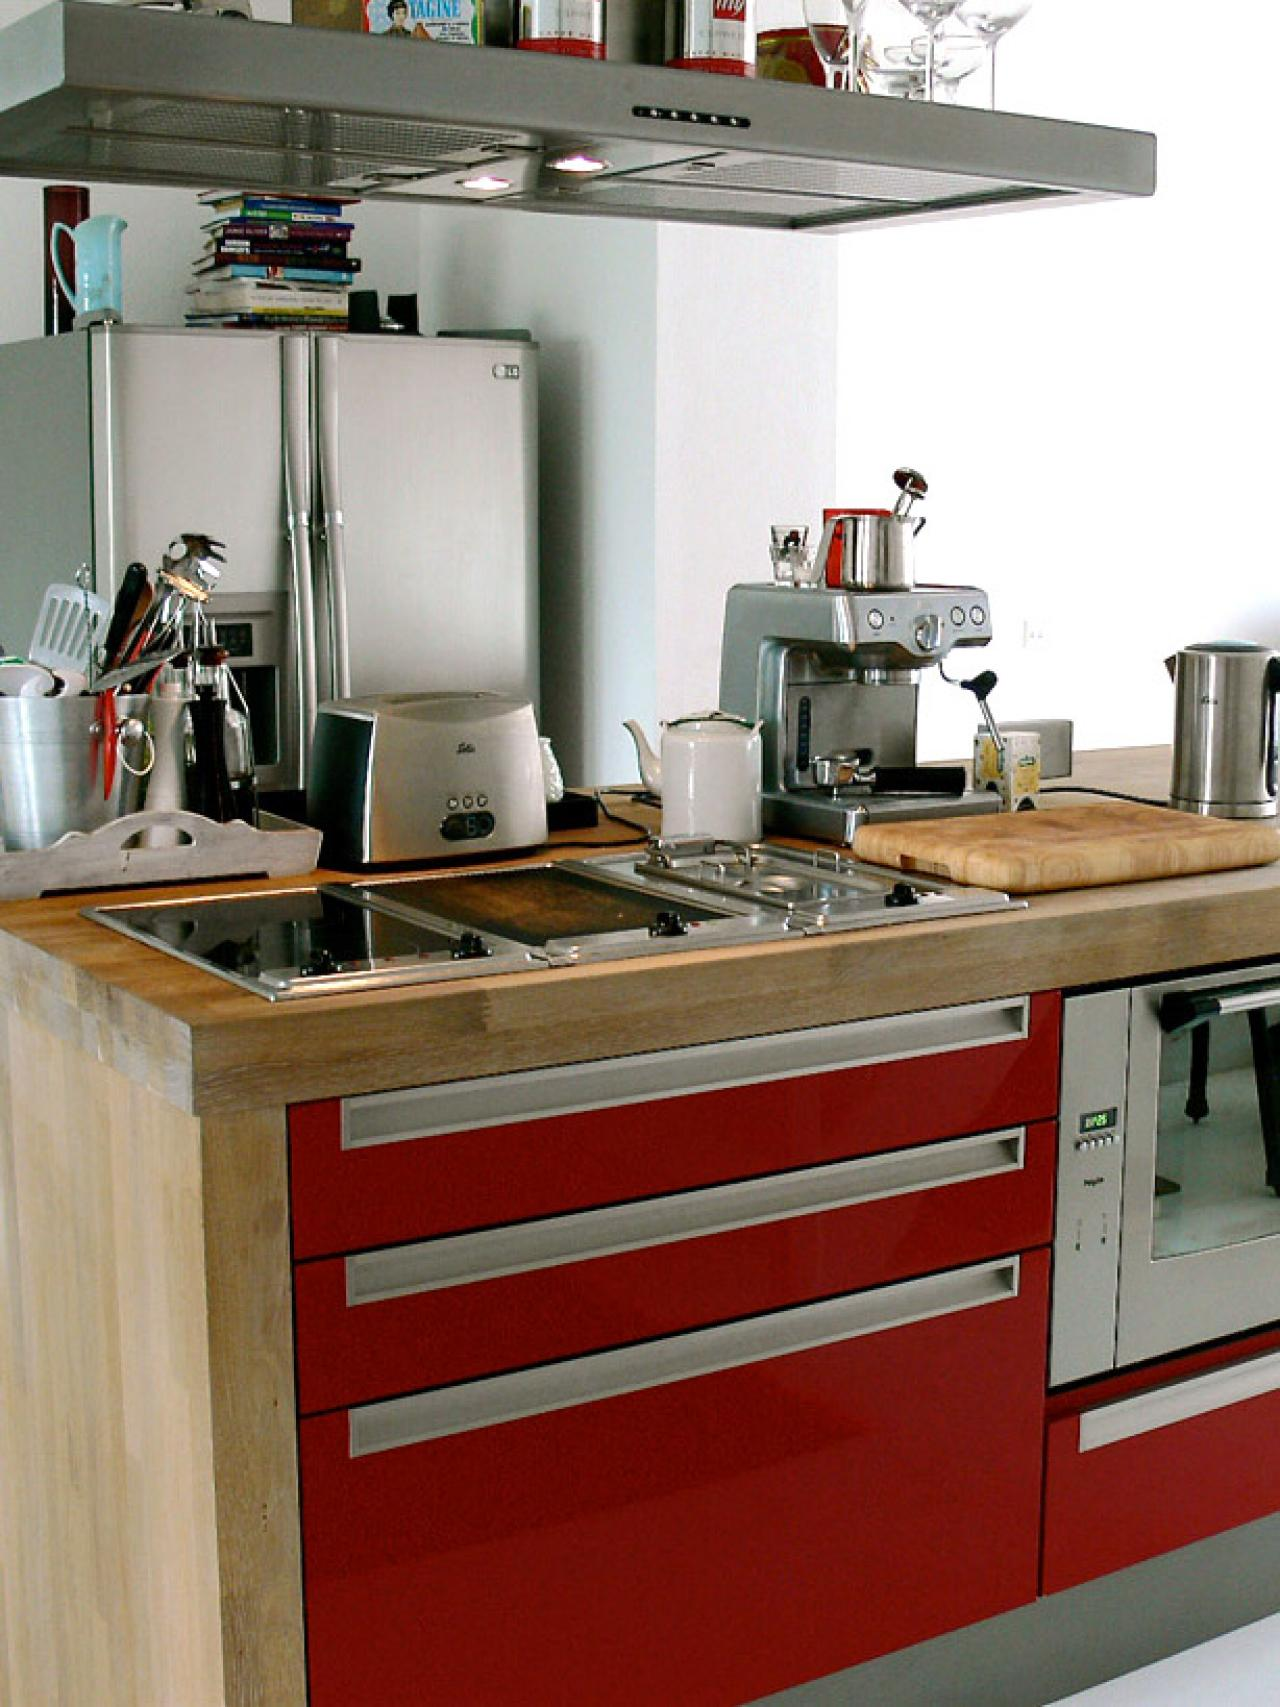 Small Space Kitchen Appliances Small Kitchen Appliances Pictures Ideas Tips From Hgtv Hgtv